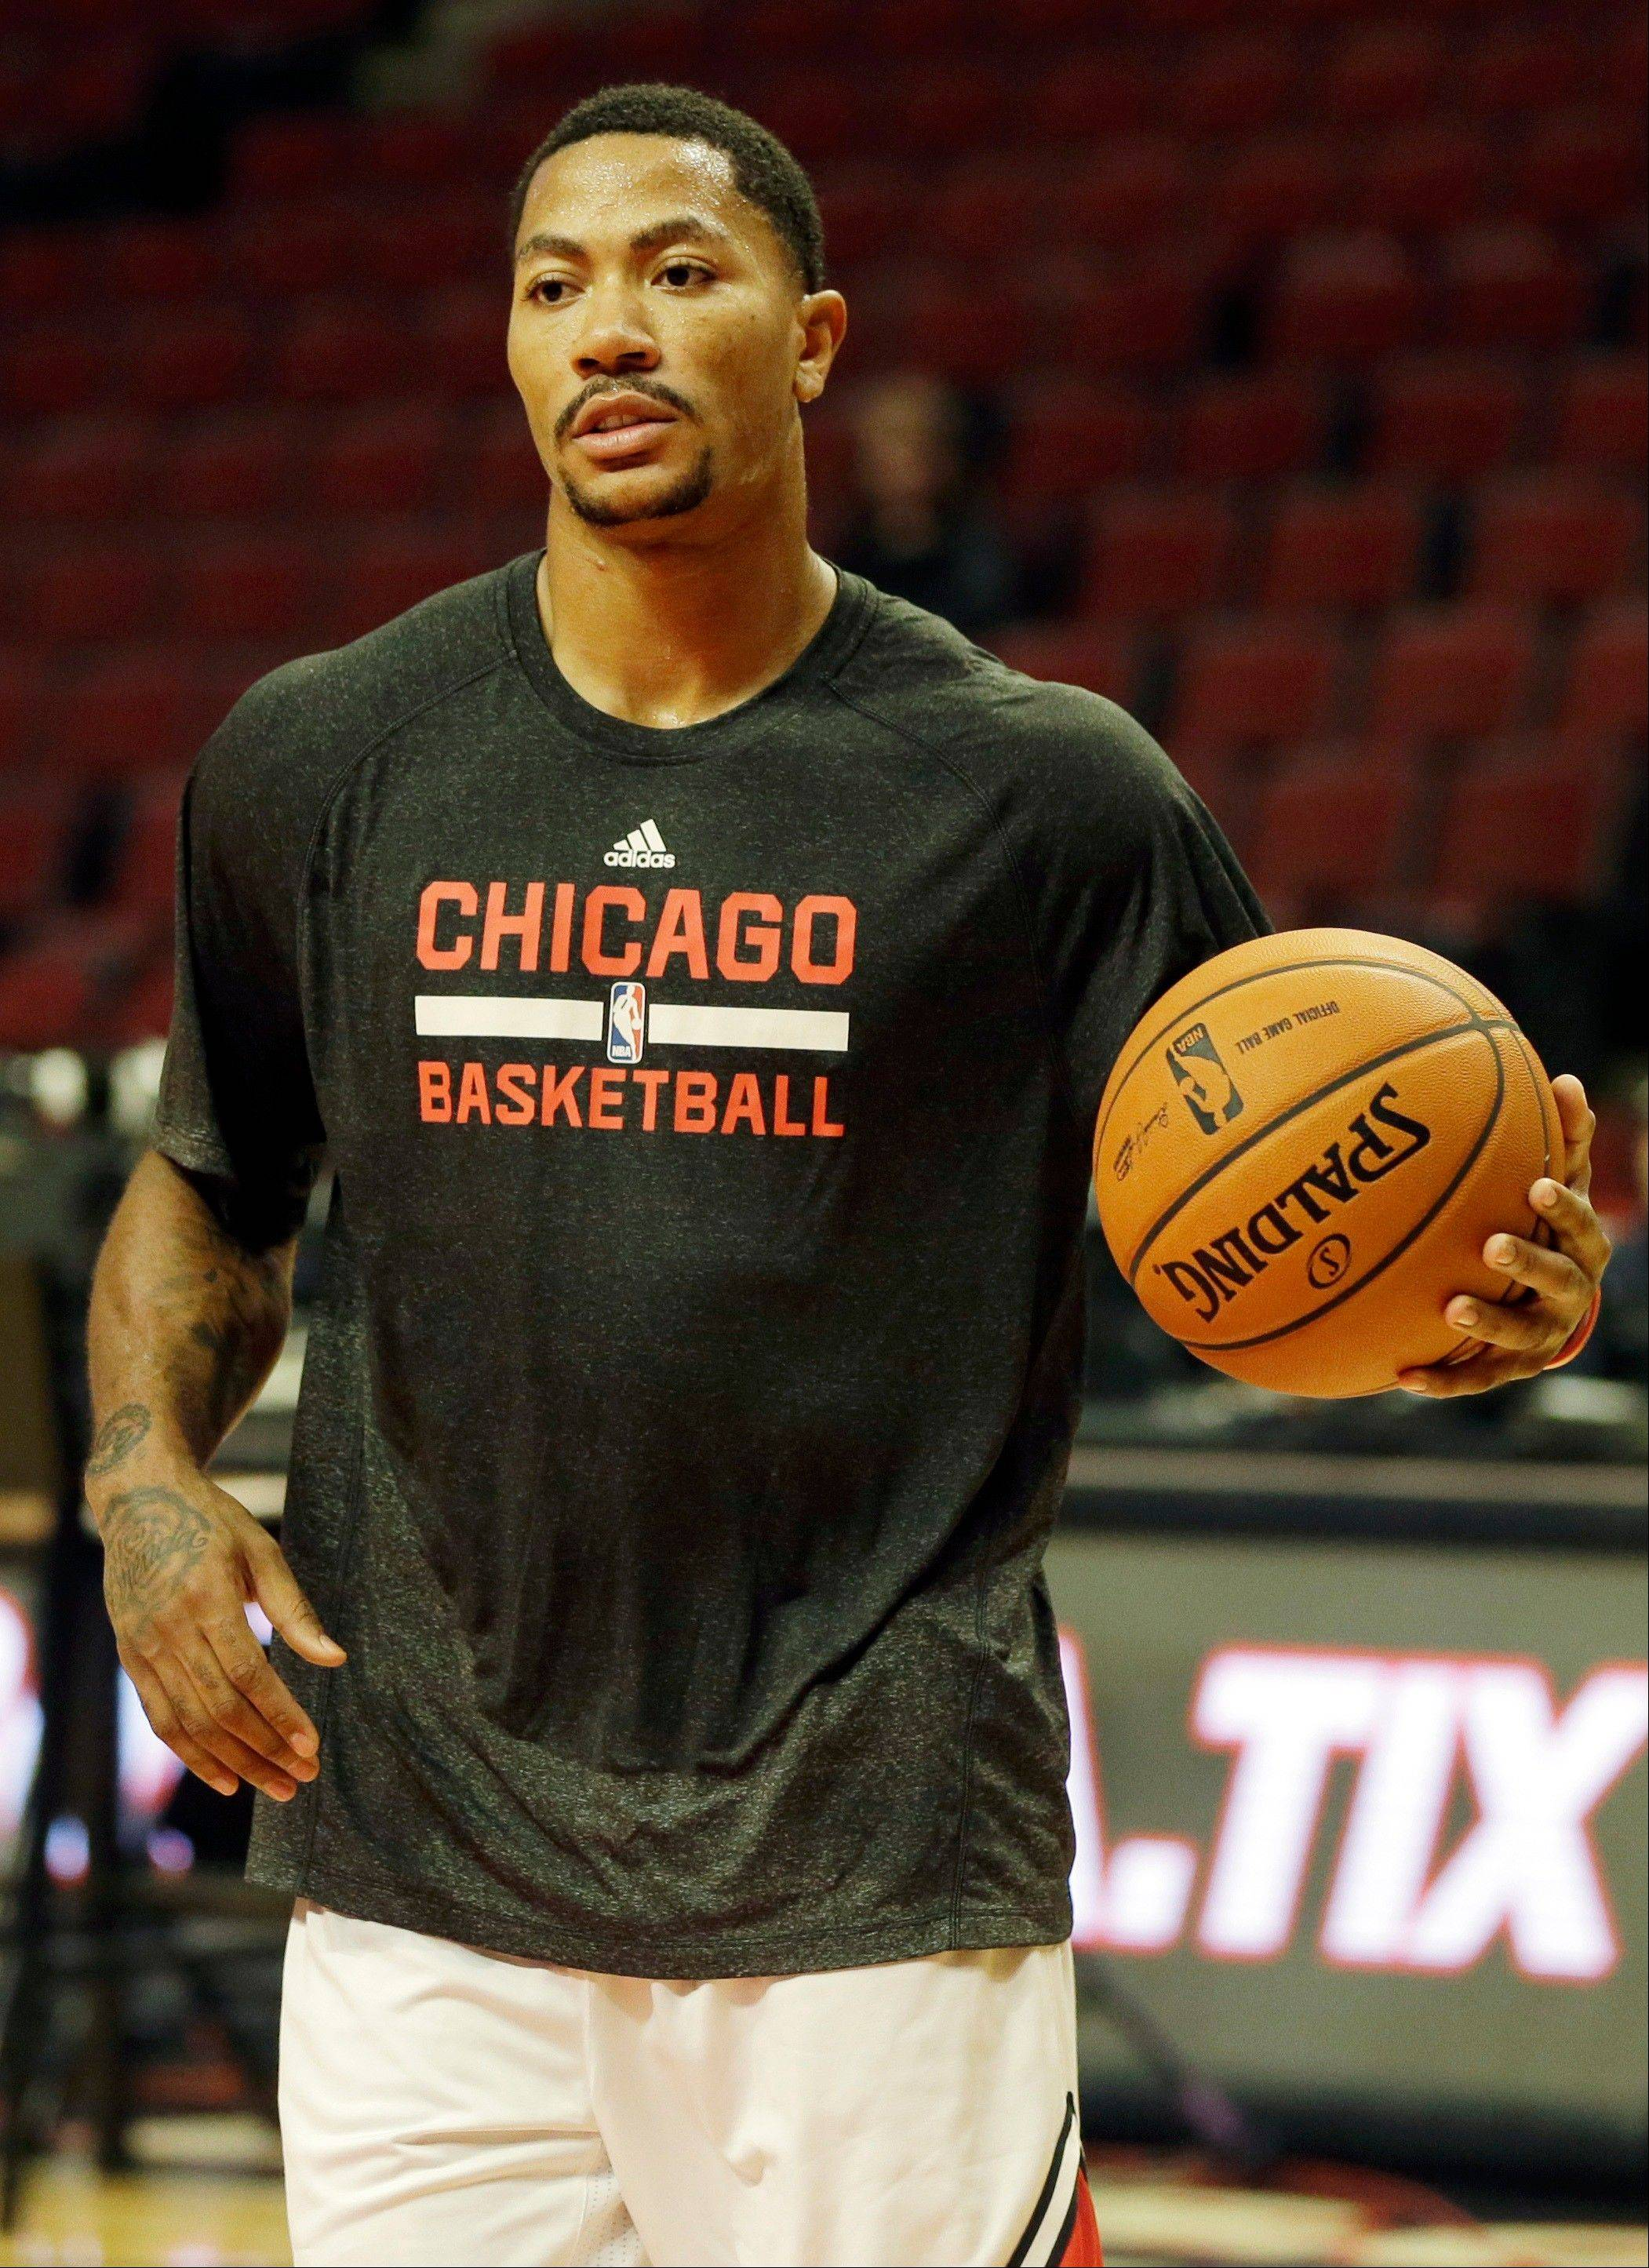 Bulls guard Derrick Rose is playing like he wants to prove a point to all of his doubters.